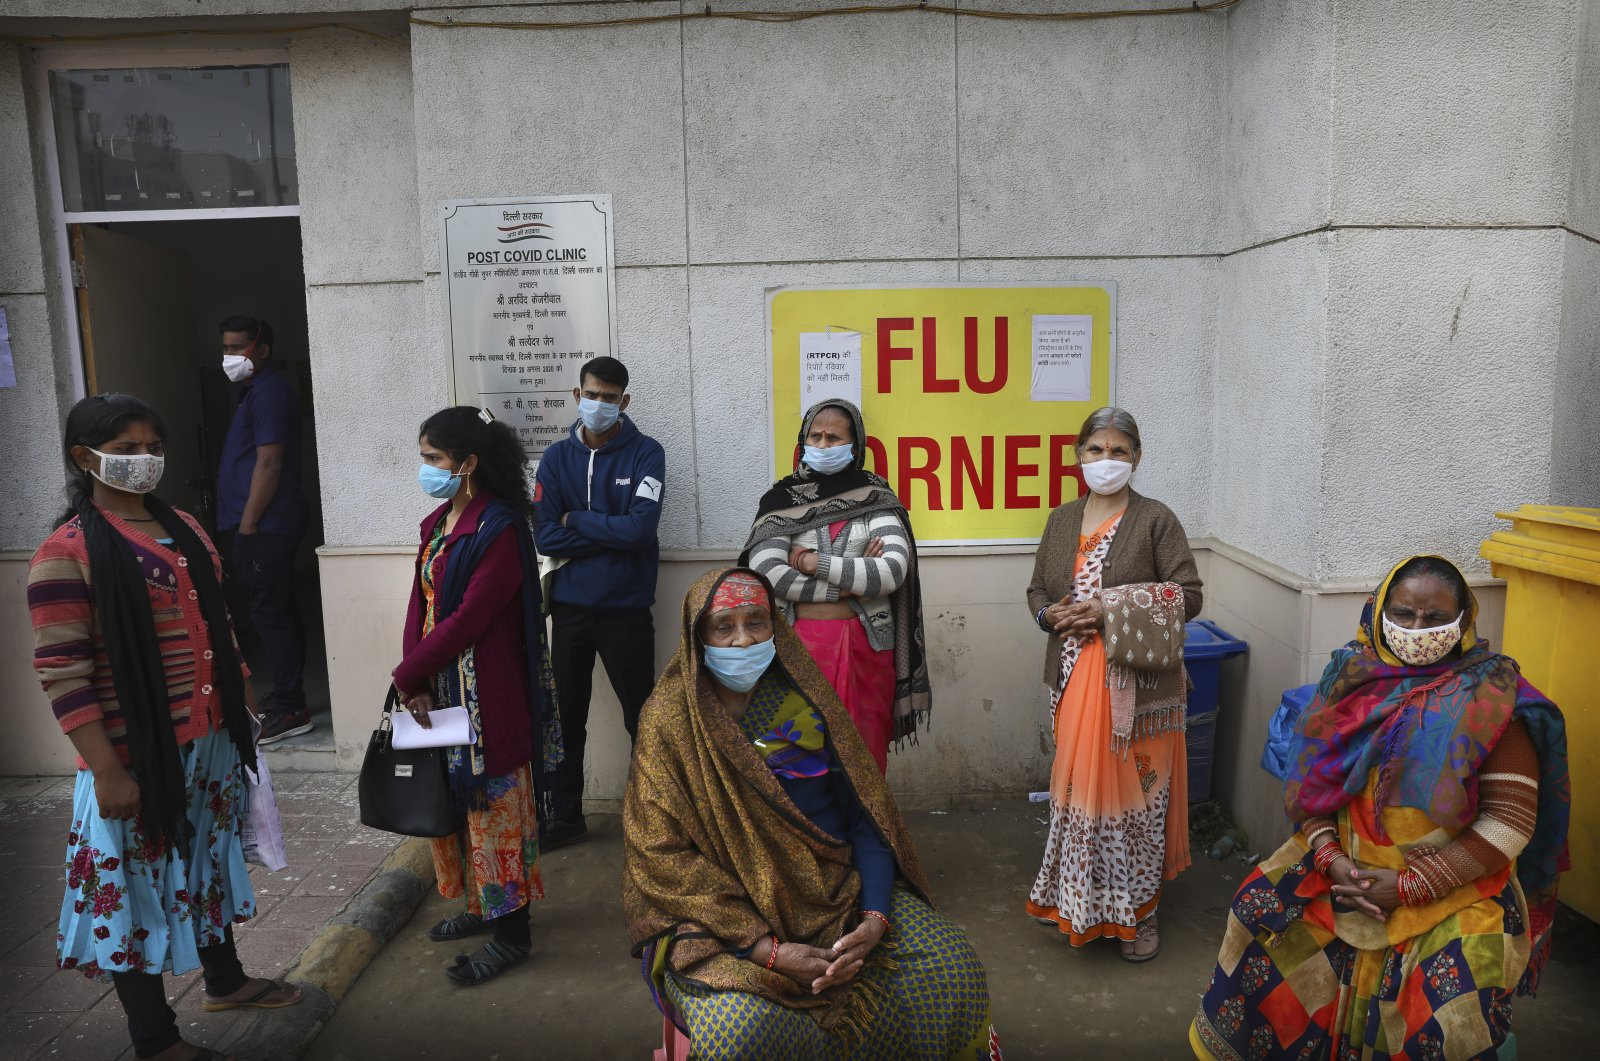 People wait outside a health center to get tested for COVID-19 in New Delhi, India, Feb. 11, 2021. (AP Photo)